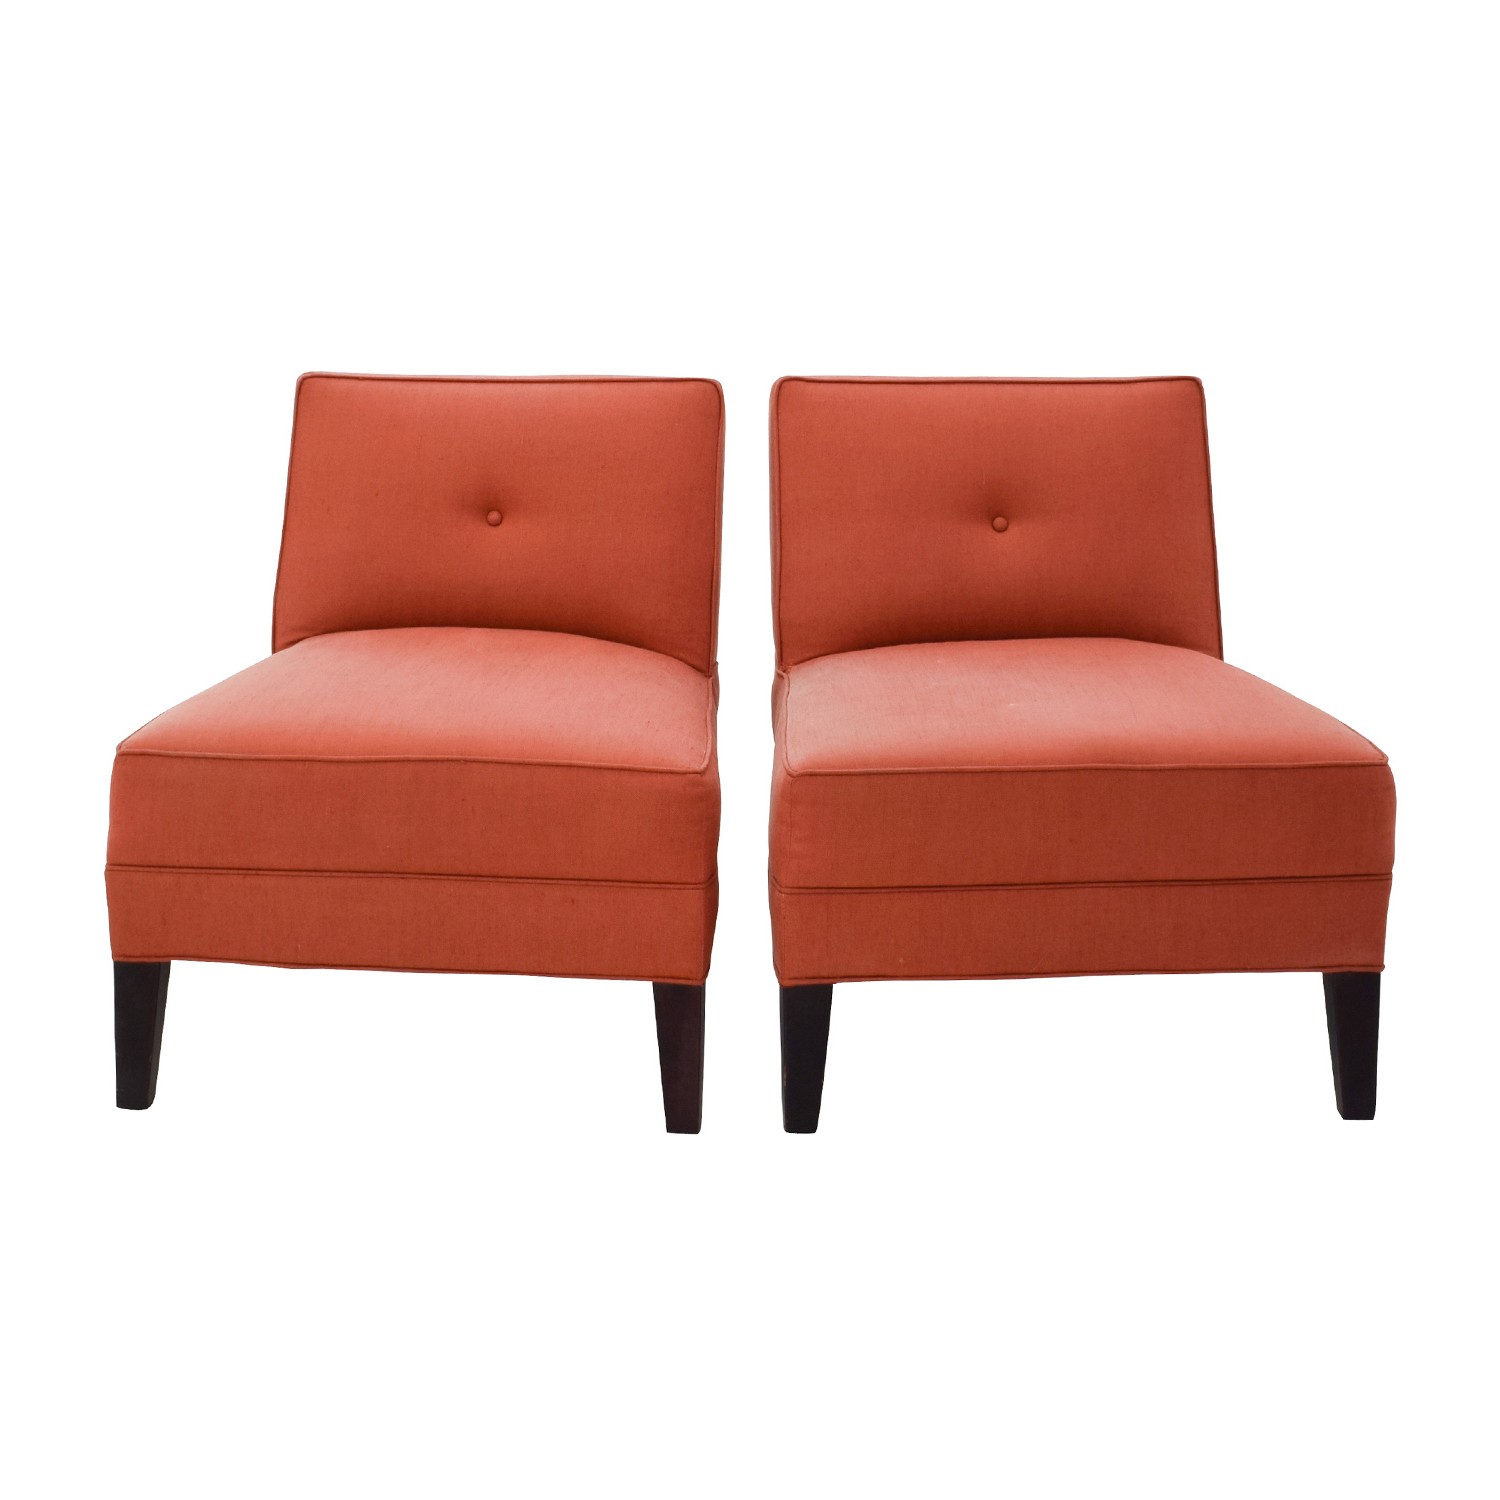 [%76% Off – Mitchell Gold And Bob Williams Mitchell Gold & Bob Regarding Most Up To Date Mitchell Arm Sofa Chairs|Mitchell Arm Sofa Chairs Regarding Preferred 76% Off – Mitchell Gold And Bob Williams Mitchell Gold & Bob|Most Recent Mitchell Arm Sofa Chairs For 76% Off – Mitchell Gold And Bob Williams Mitchell Gold & Bob|Well Known 76% Off – Mitchell Gold And Bob Williams Mitchell Gold & Bob Intended For Mitchell Arm Sofa Chairs%] (View 1 of 20)